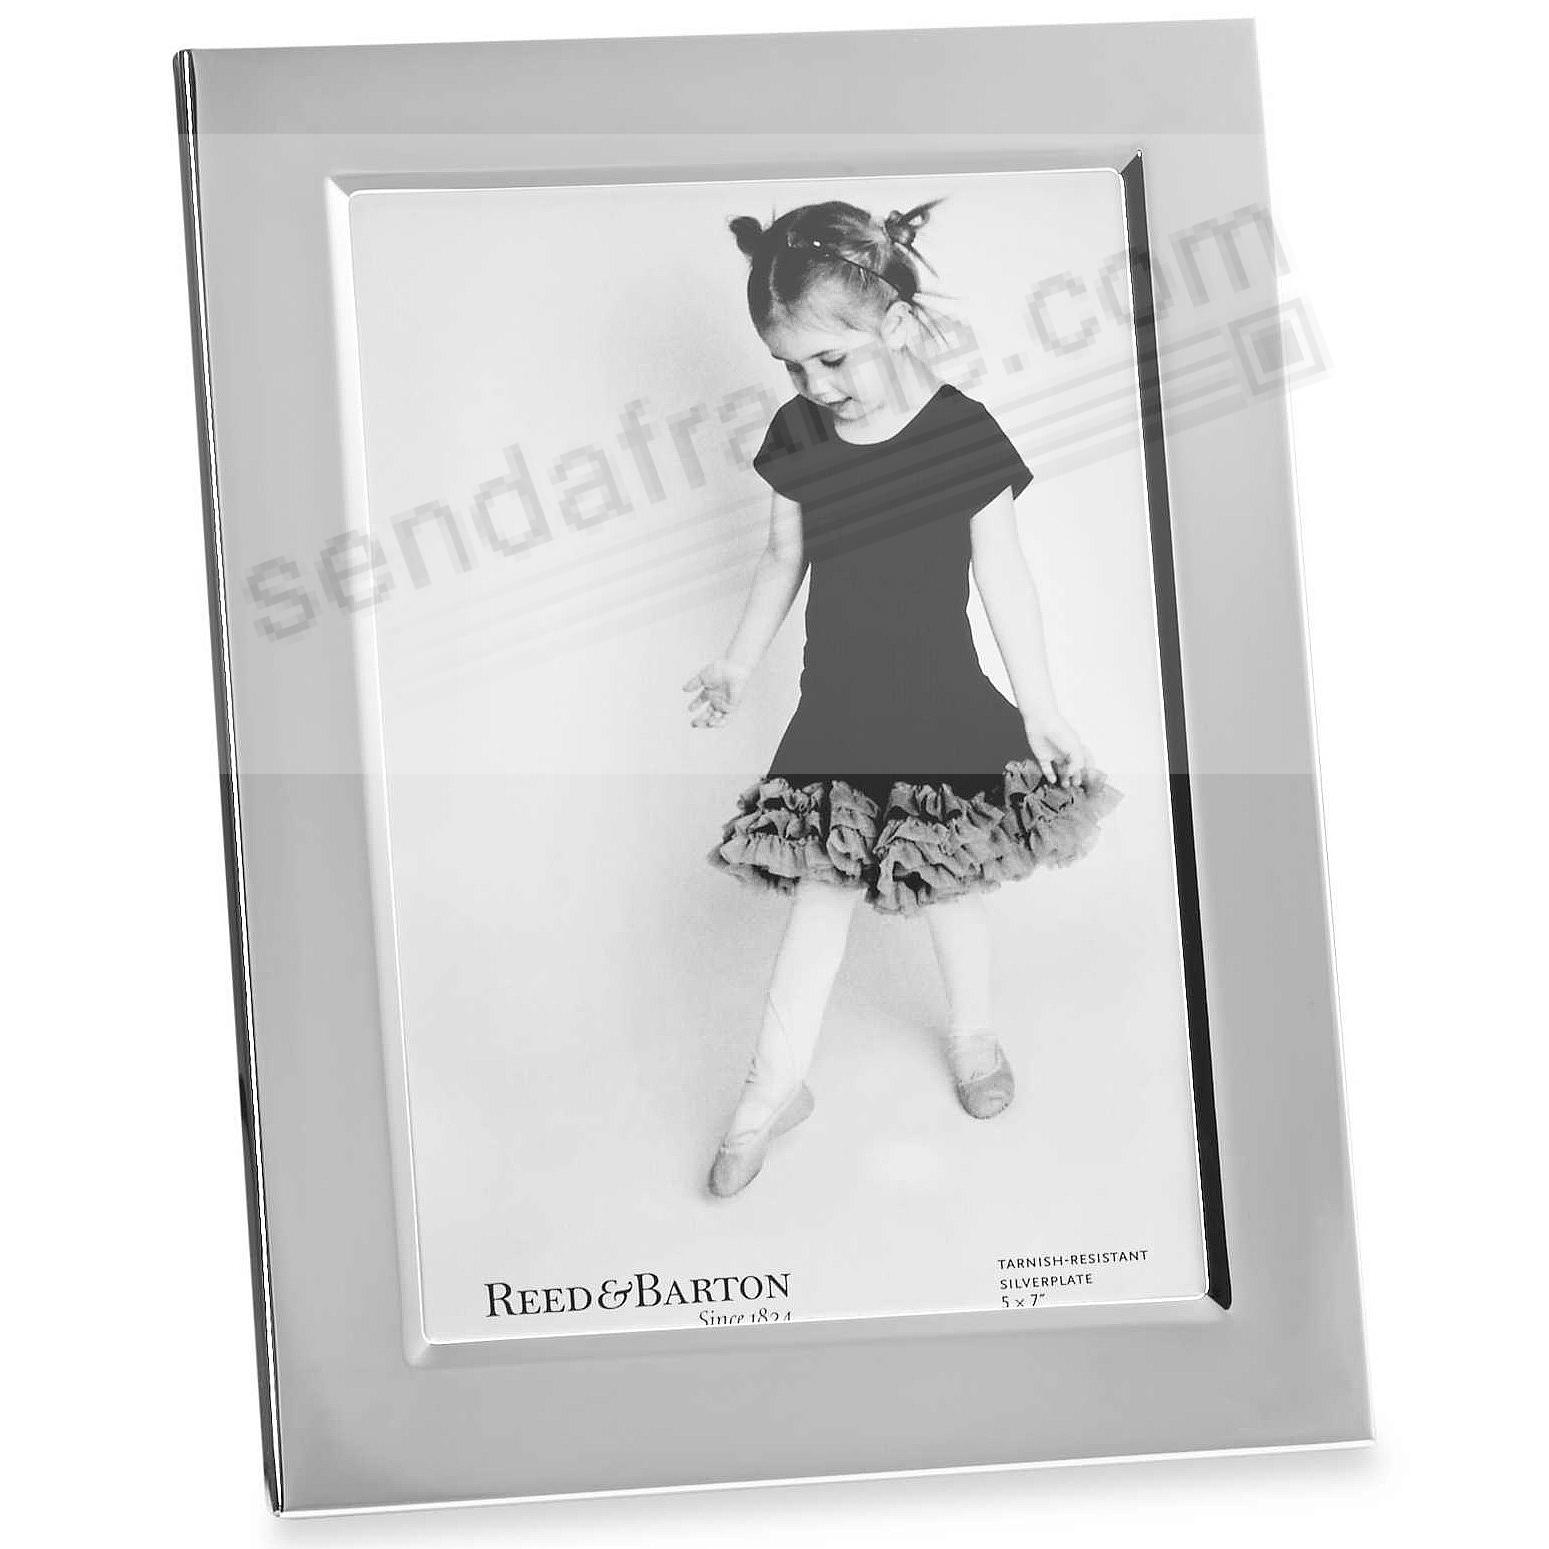 The Original Reed & Barton® Silverplate 5x7 frame - Engraveable